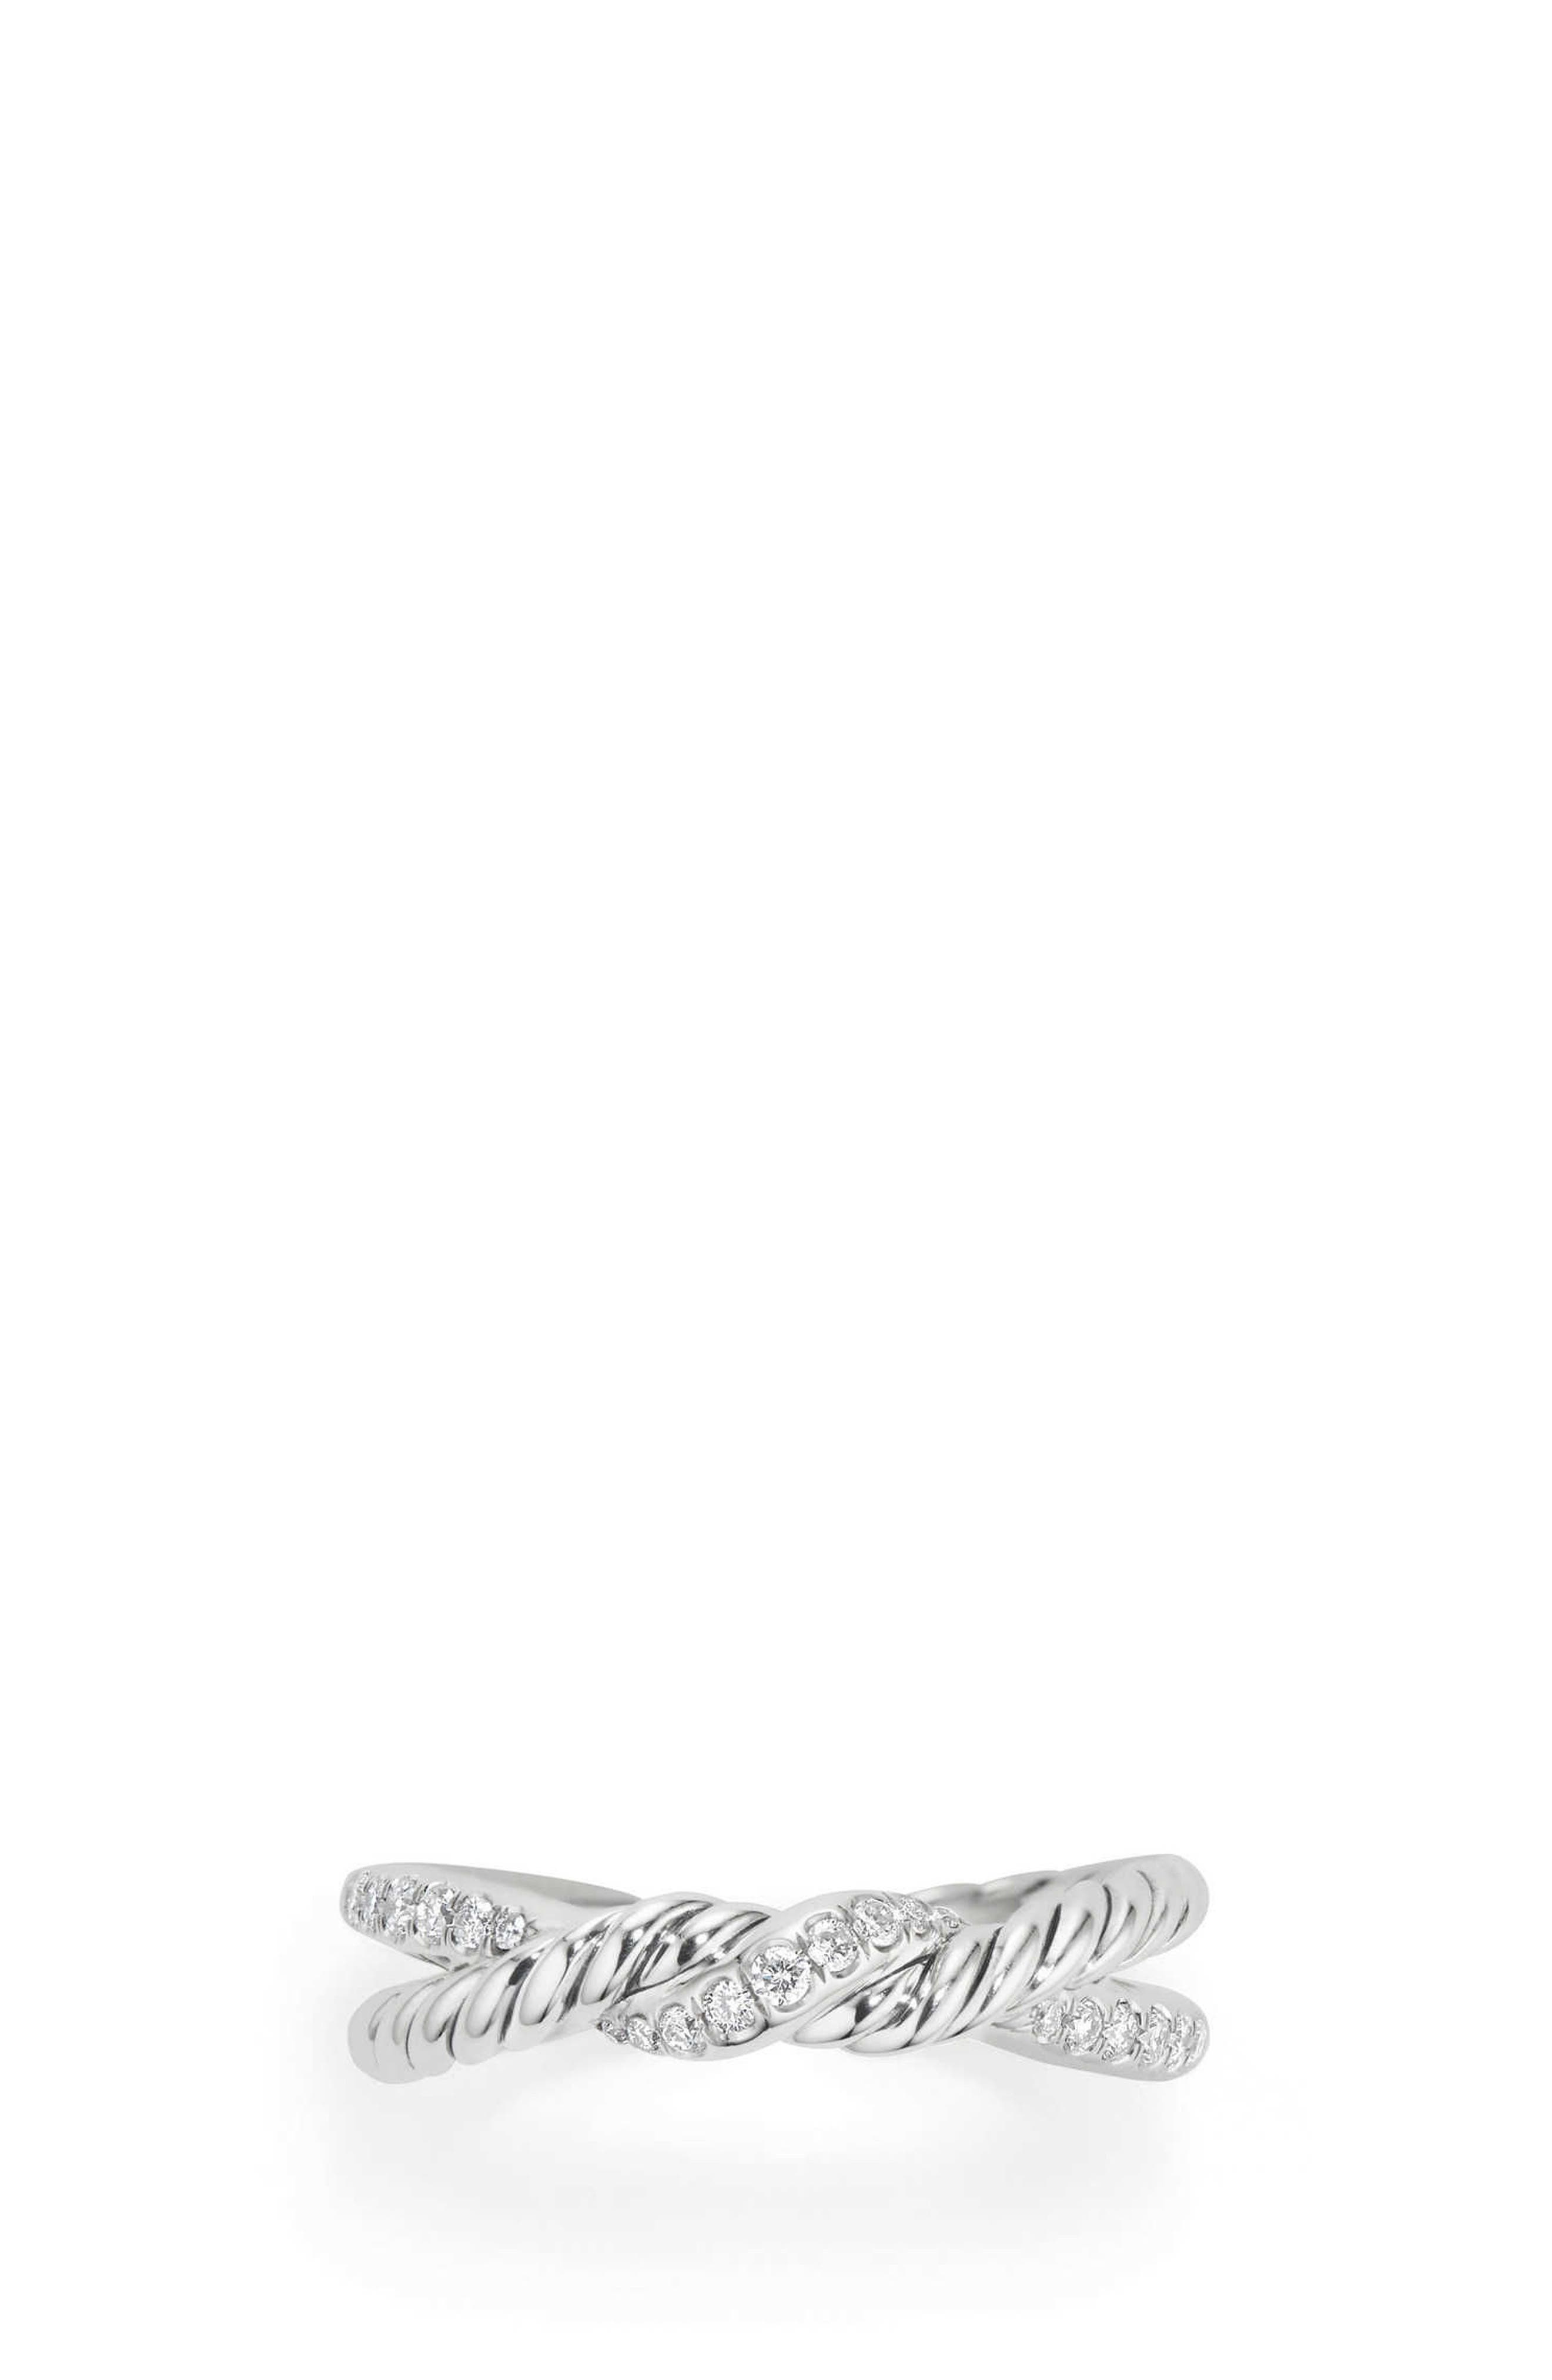 Continuance Twist Ring with Diamonds,                         Main,                         color, SILVER/ DIAMOND